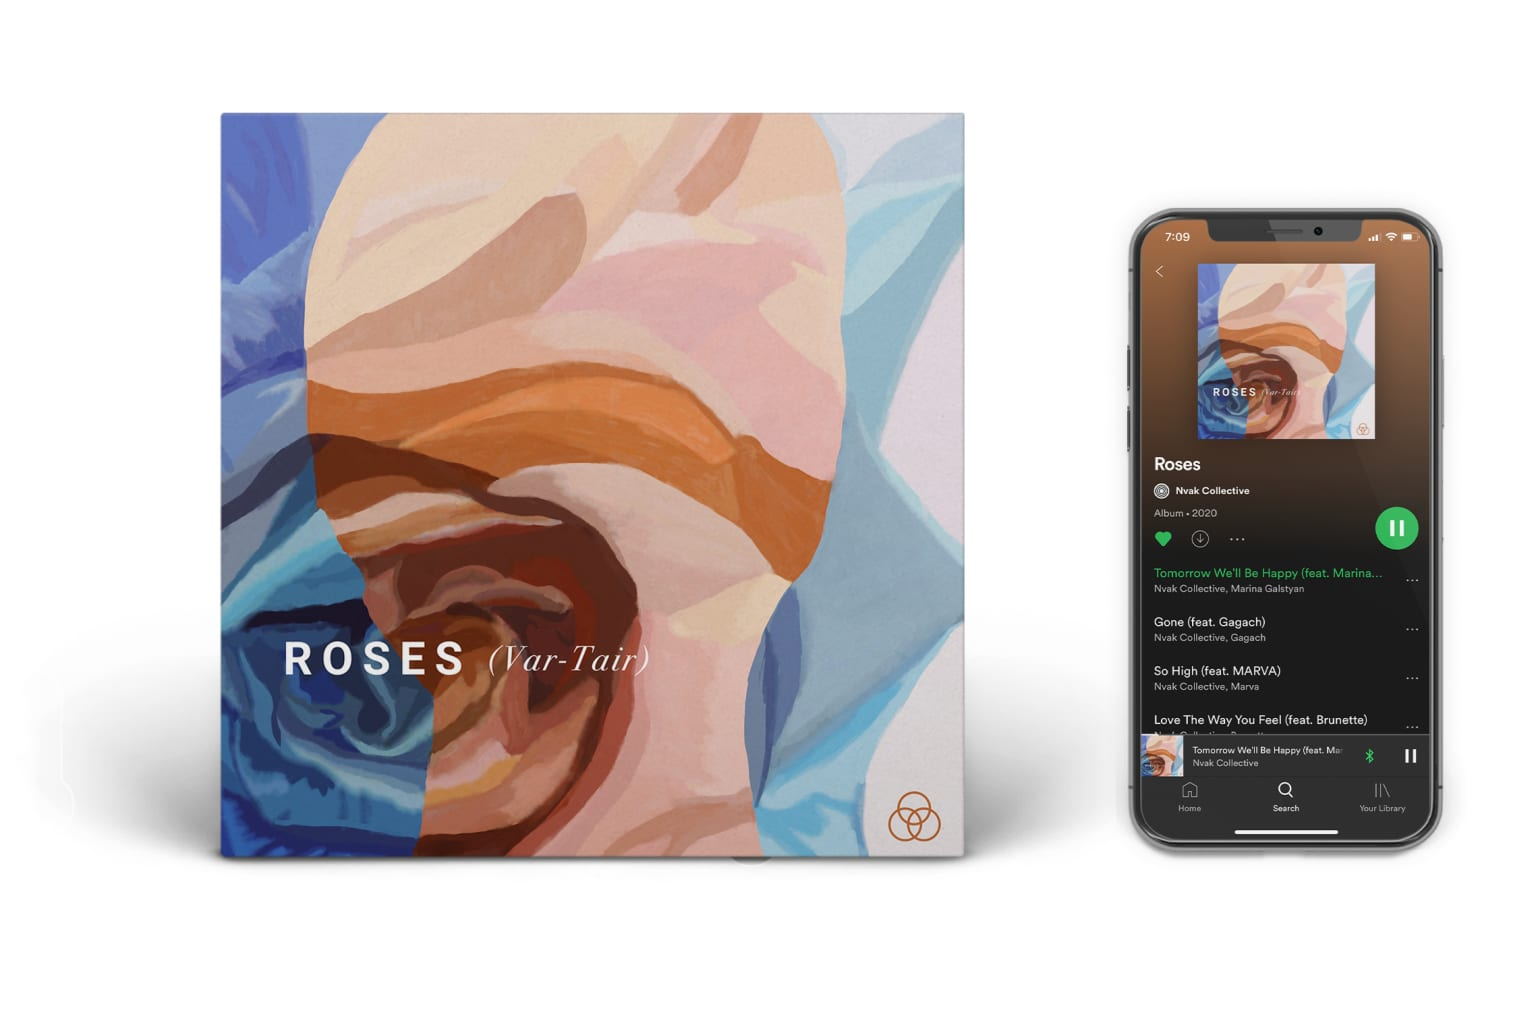 Roses Album Artwork